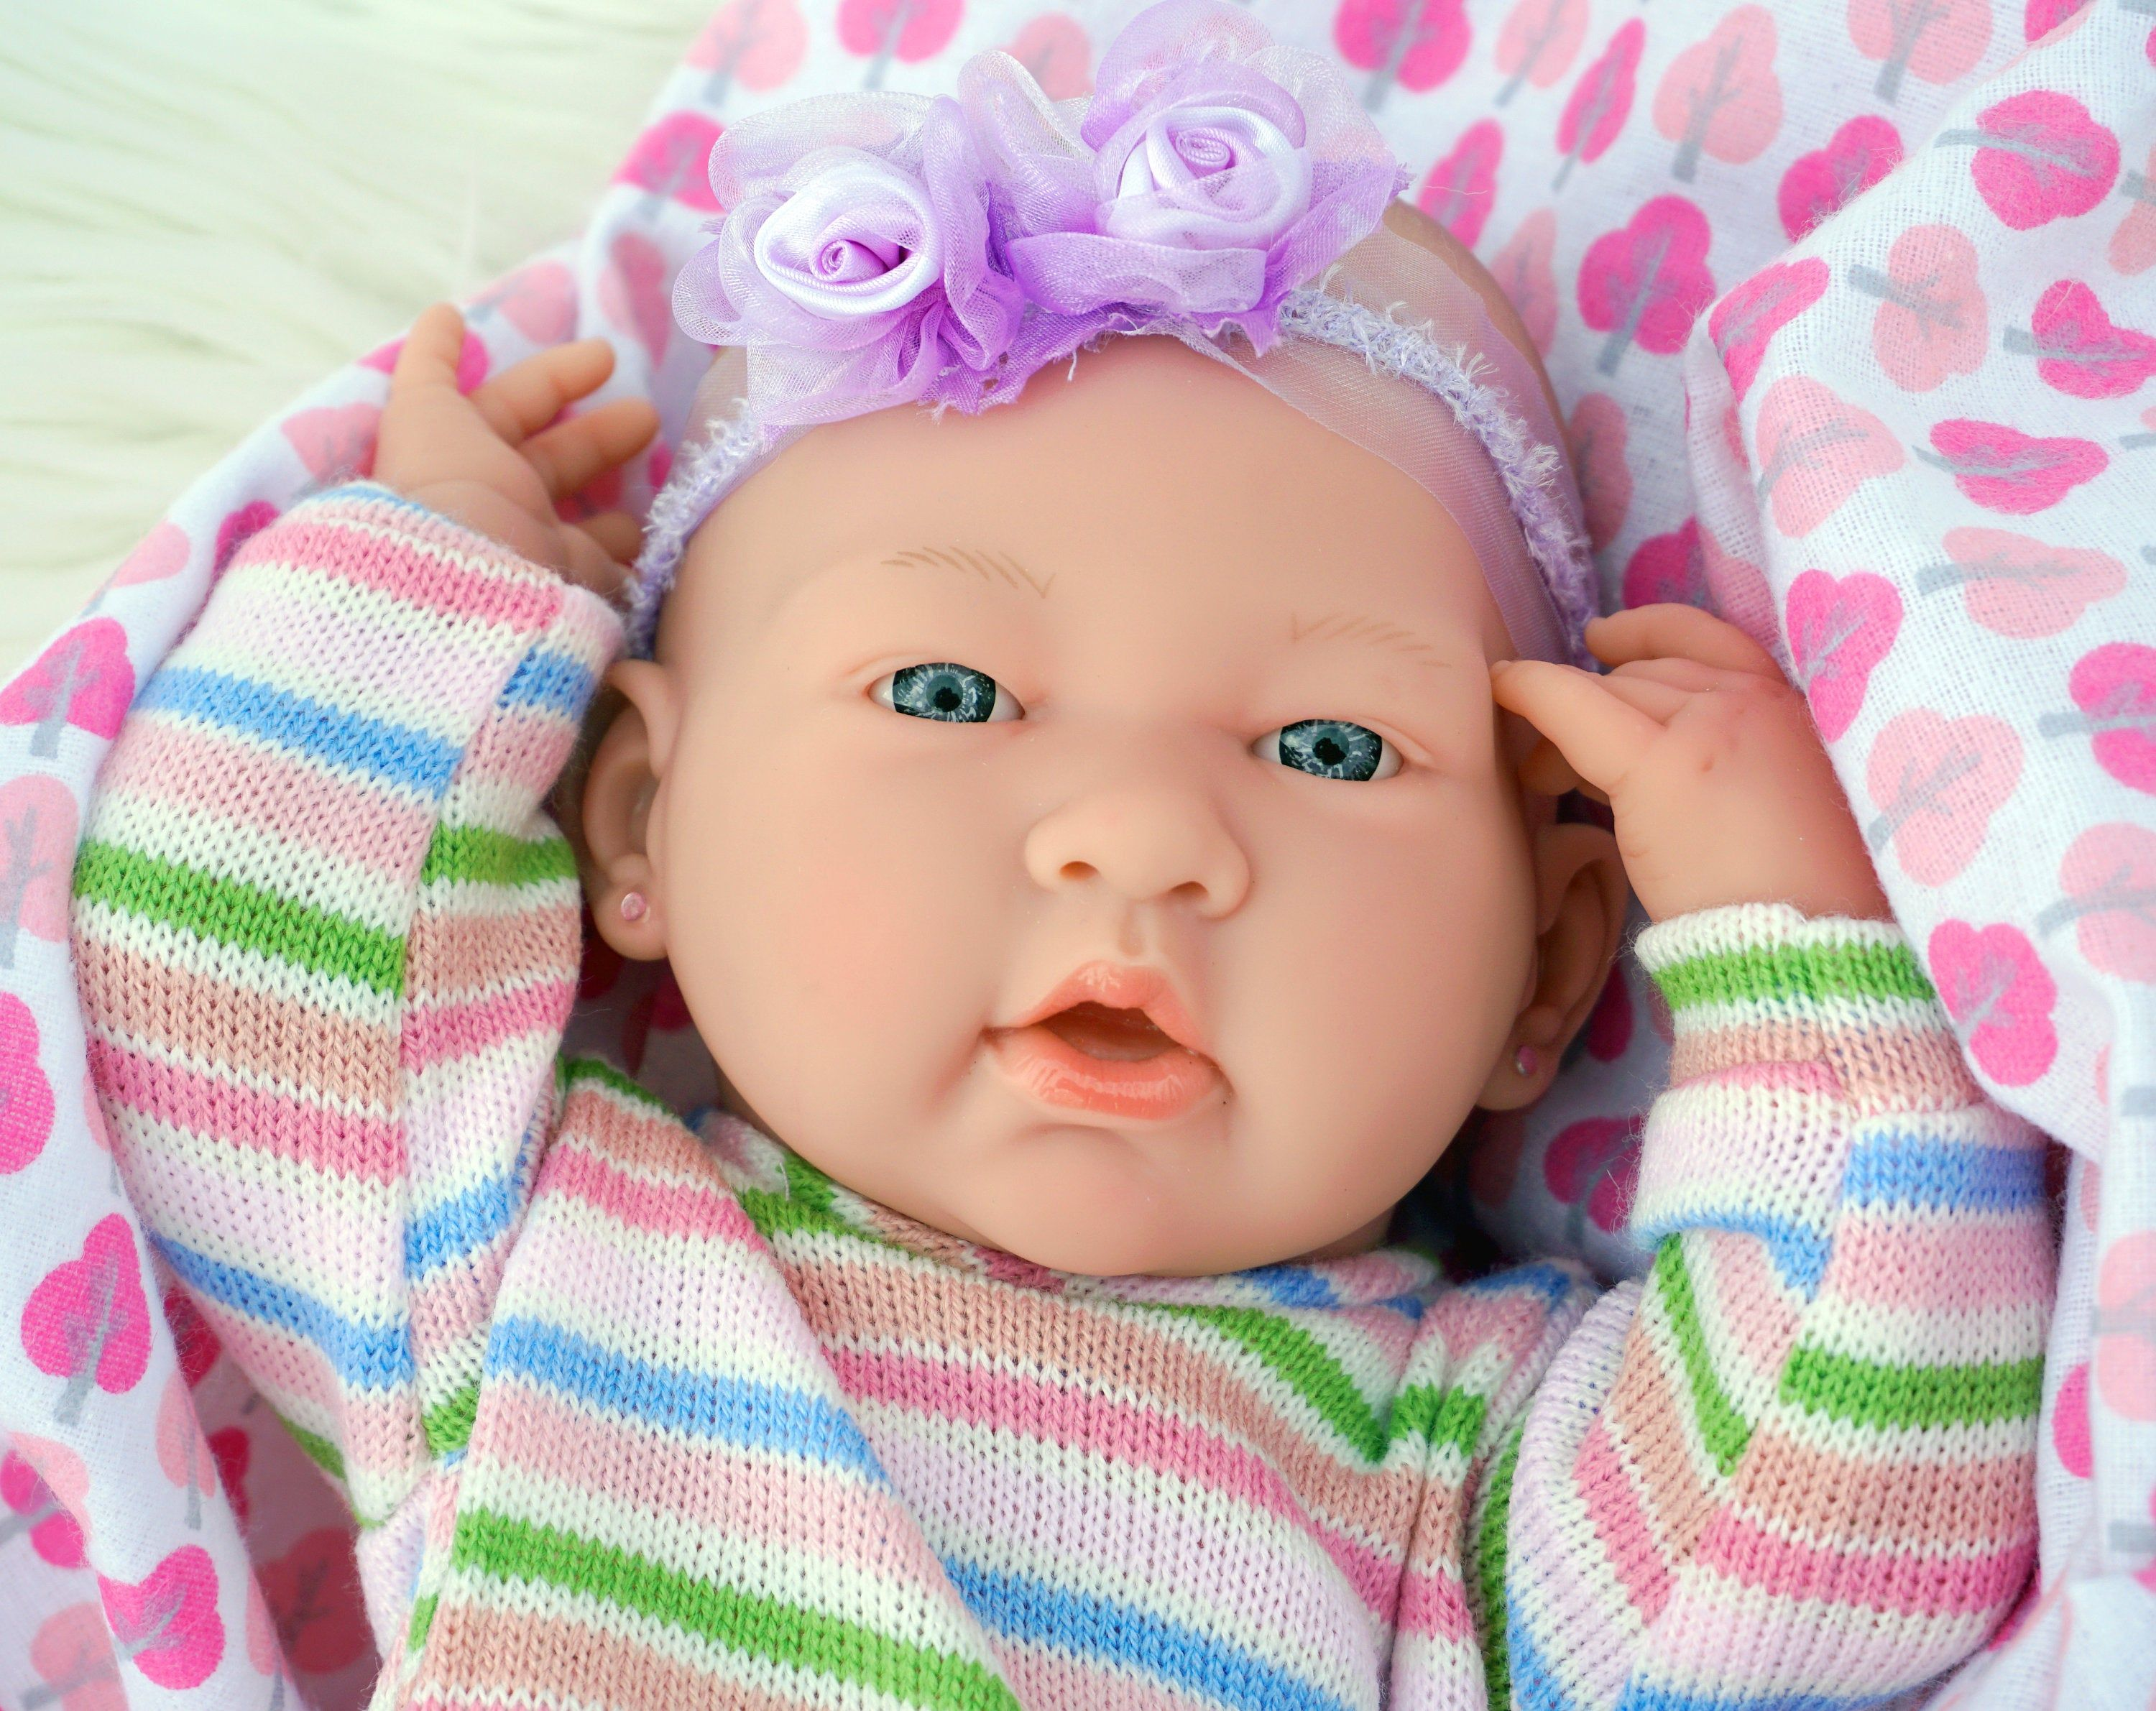 Reborn Dolls Baby Realistic Newborn 15 Inches Anatomically Correct Real Girl Baby Washable Lifelike Baby Doll Soft Vinyl Gift Accessories In 2020 Baby Musical Toys Handmade Baby Blankets Reborn Dolls